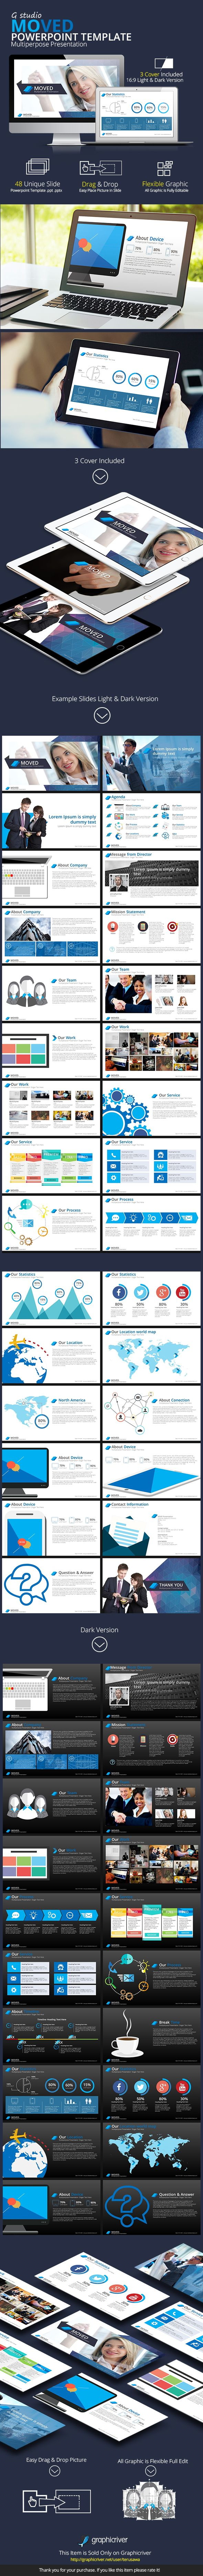 Magnificent 1 Button Template Thin 10 Tips For Writing A Resume Round 100 Free Resume Templates 12 Hour Schedule Template Old 15 Year Old Resume Sample White17 Worst Things To Say On Your Resume Business Insider 25  Best Ideas About Template Powerpoint 2007 On Pinterest | Fundo ..